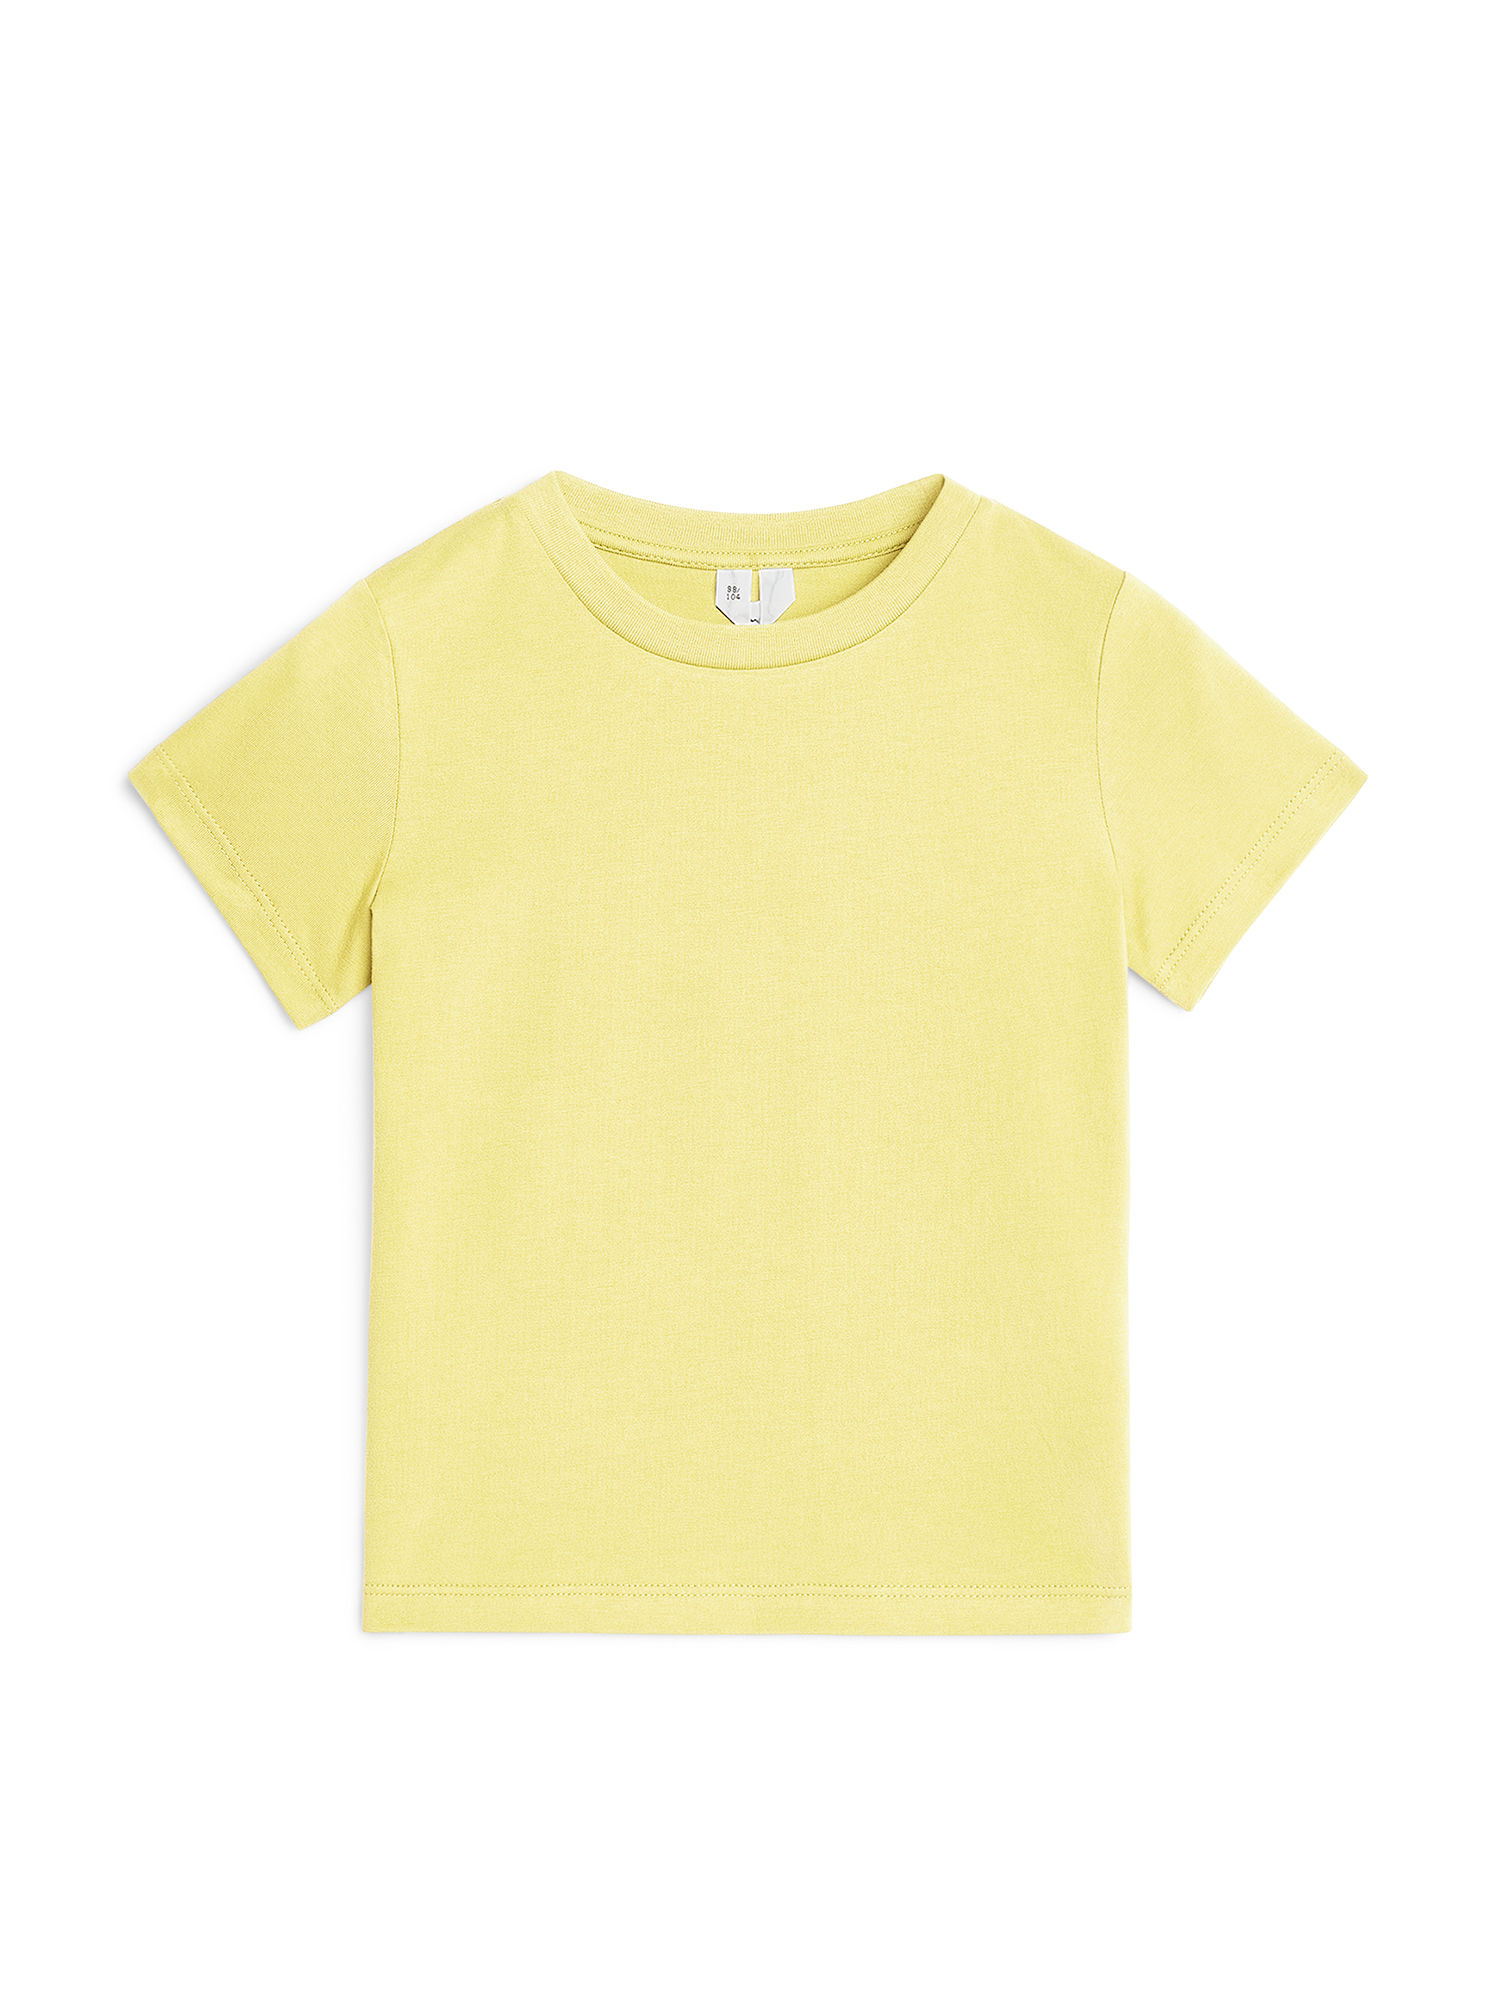 Fabric Swatch image of Arket organic cotton crew-neck t-shirt in yellow